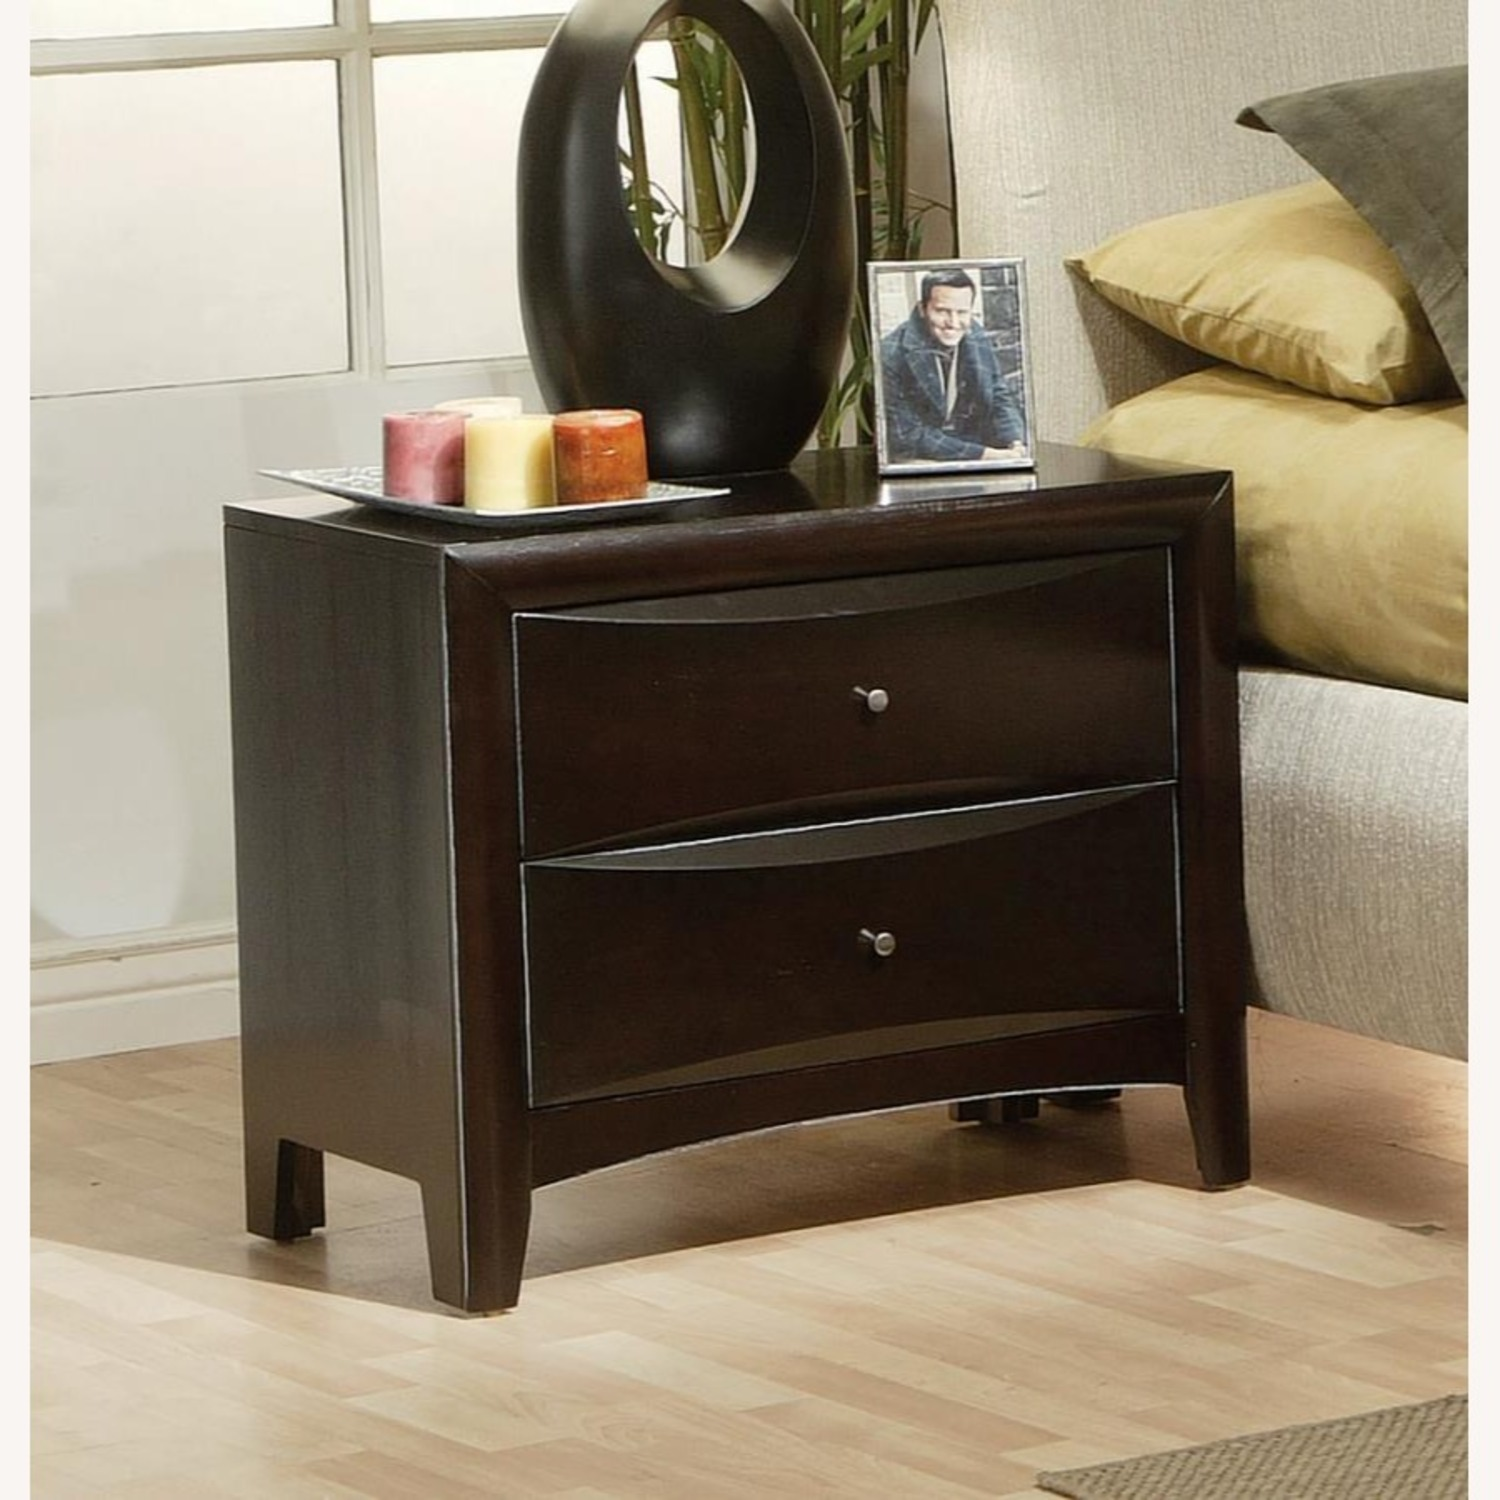 Nightstand In Cappuccino Finish w/ Nickel Knobs - image-3